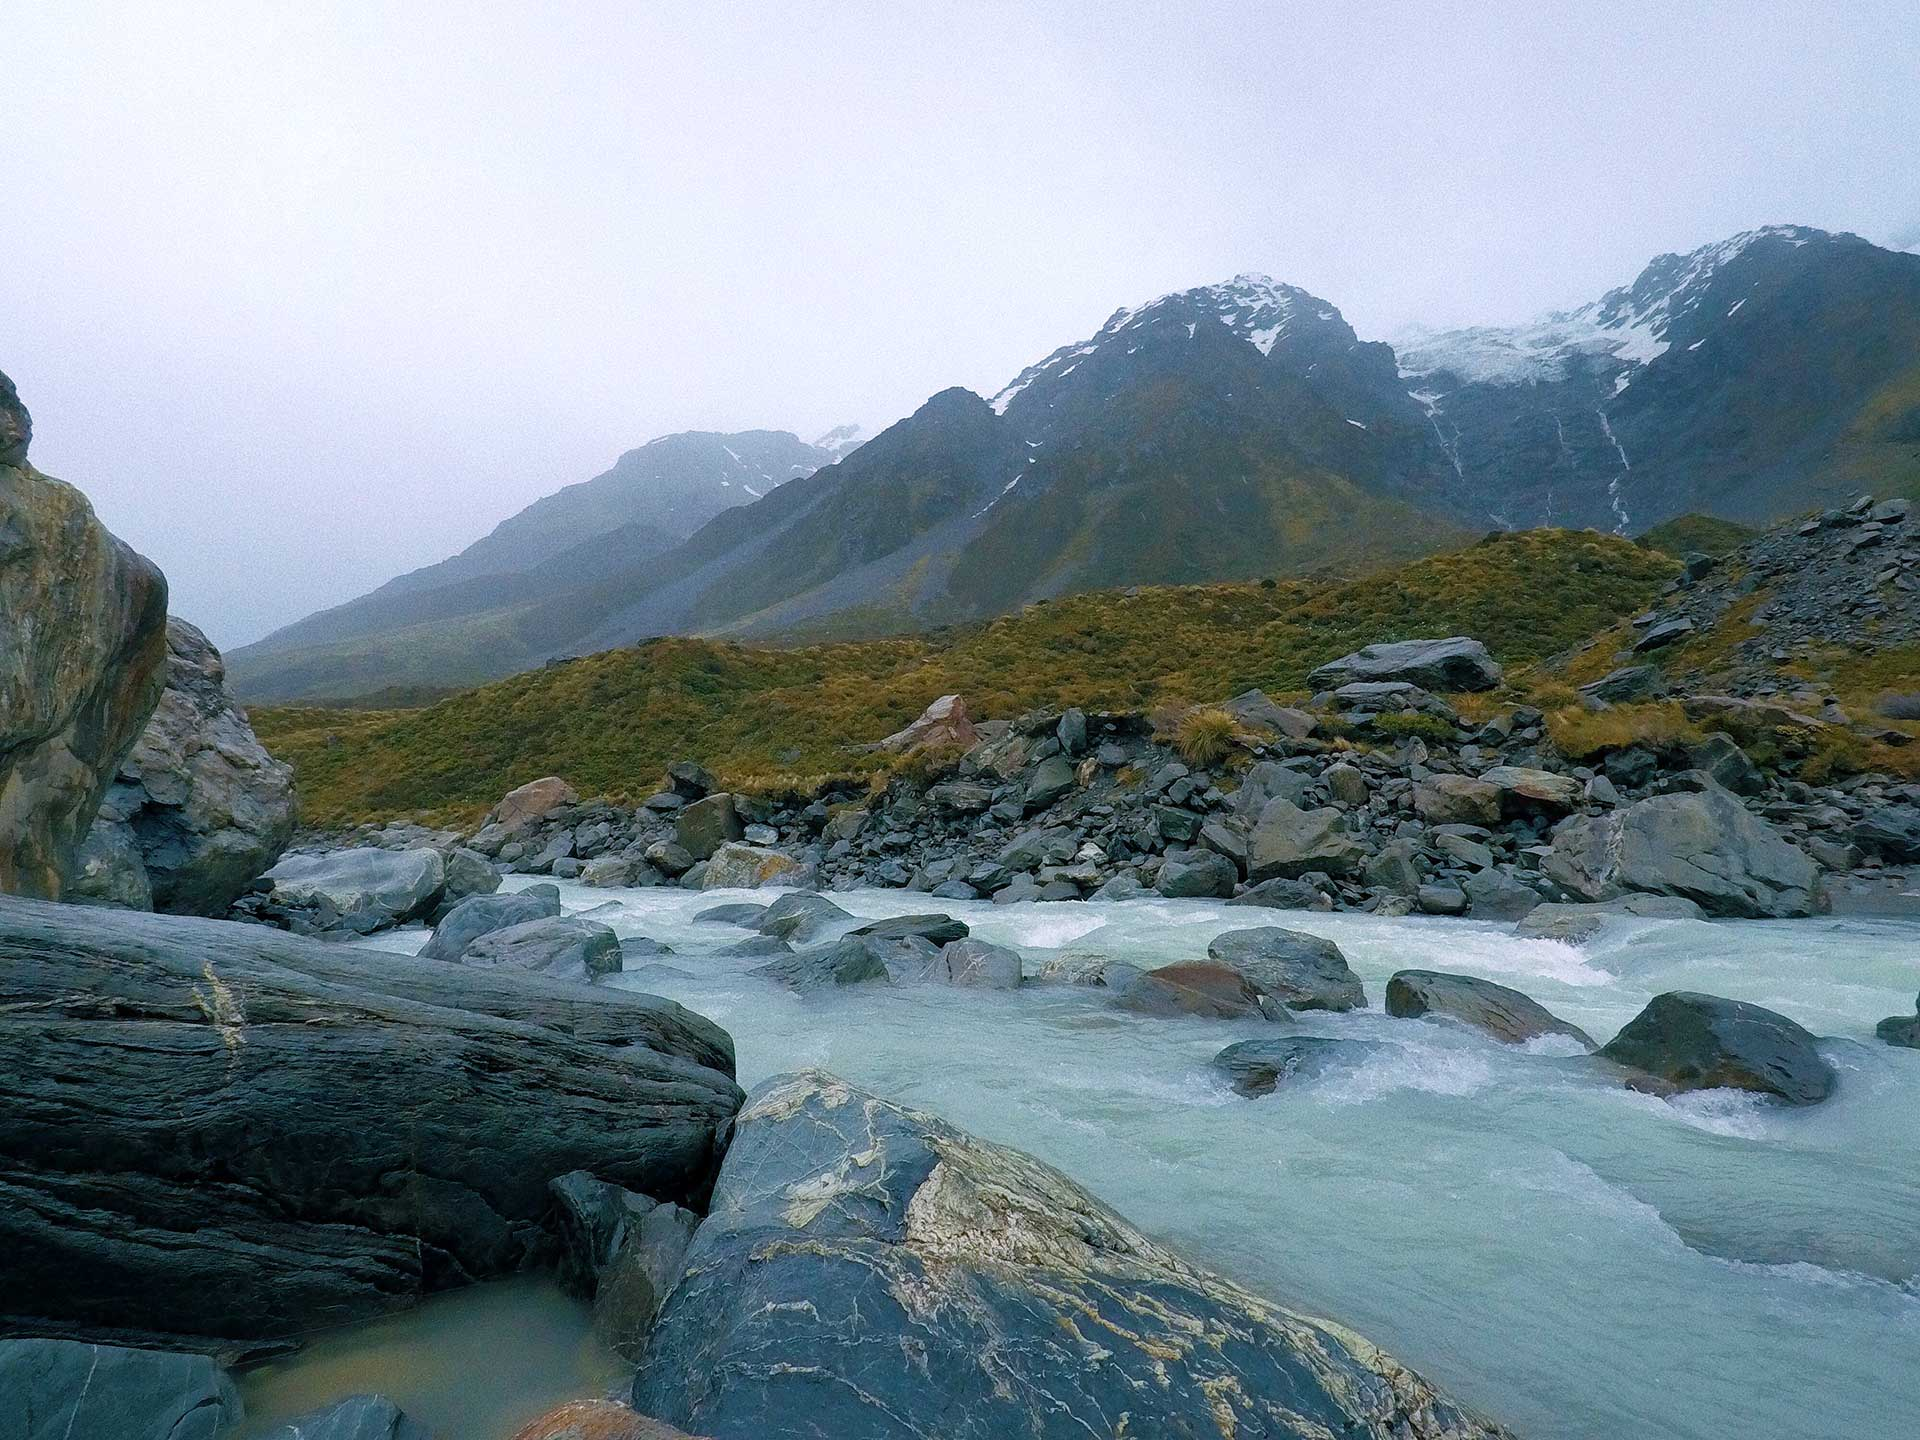 thereafterish, new zealand bright blue cold glacial Hooker River rushing through mountainous valley